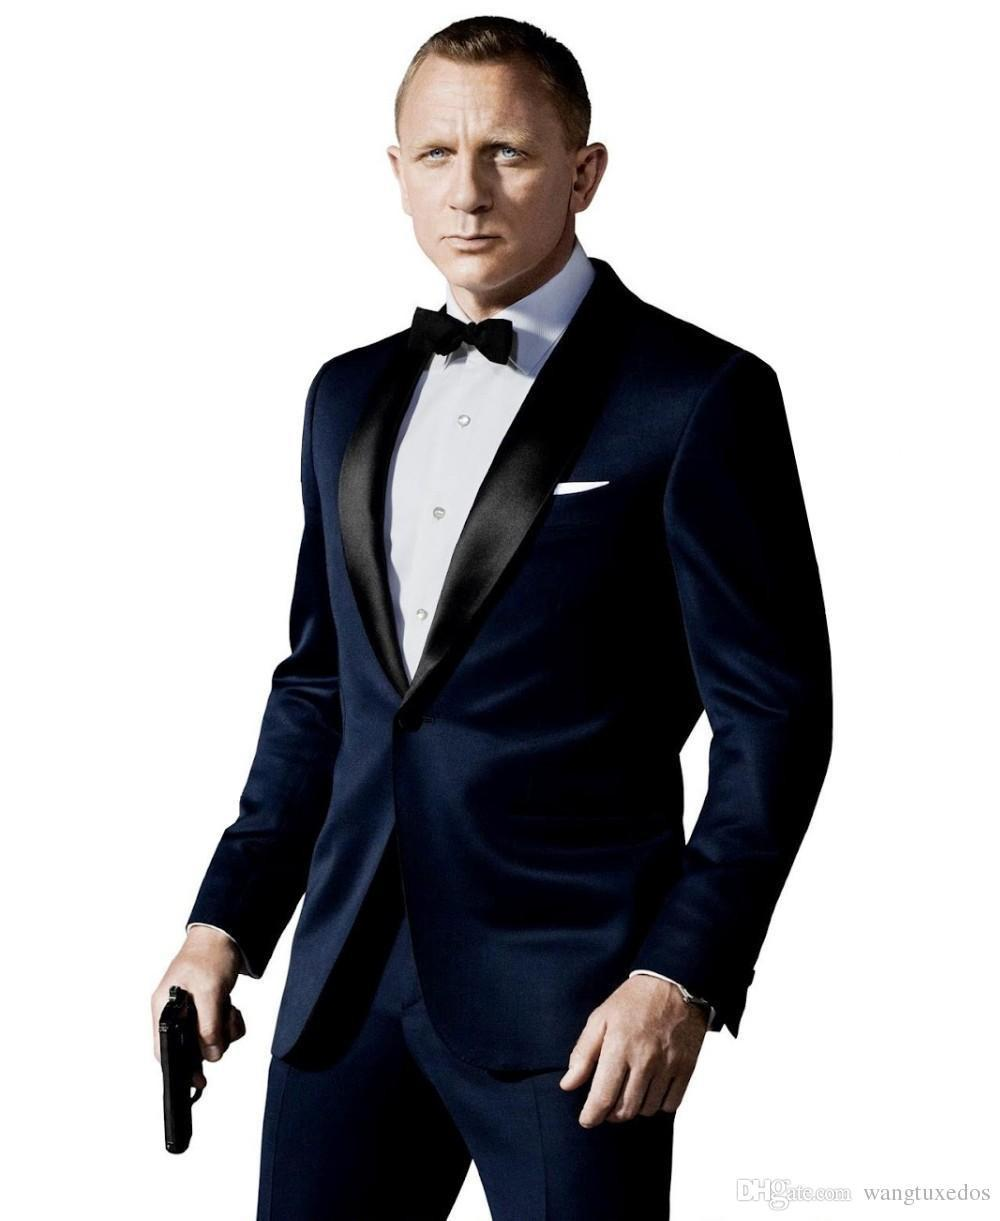 007 James Bond blu scuro / nero Smoking smoking giacca + pantaloni + cravatta Moda uomo Smoking Tux Boyfriend Blazer Bridegroom Abbigliamento uomo Speech